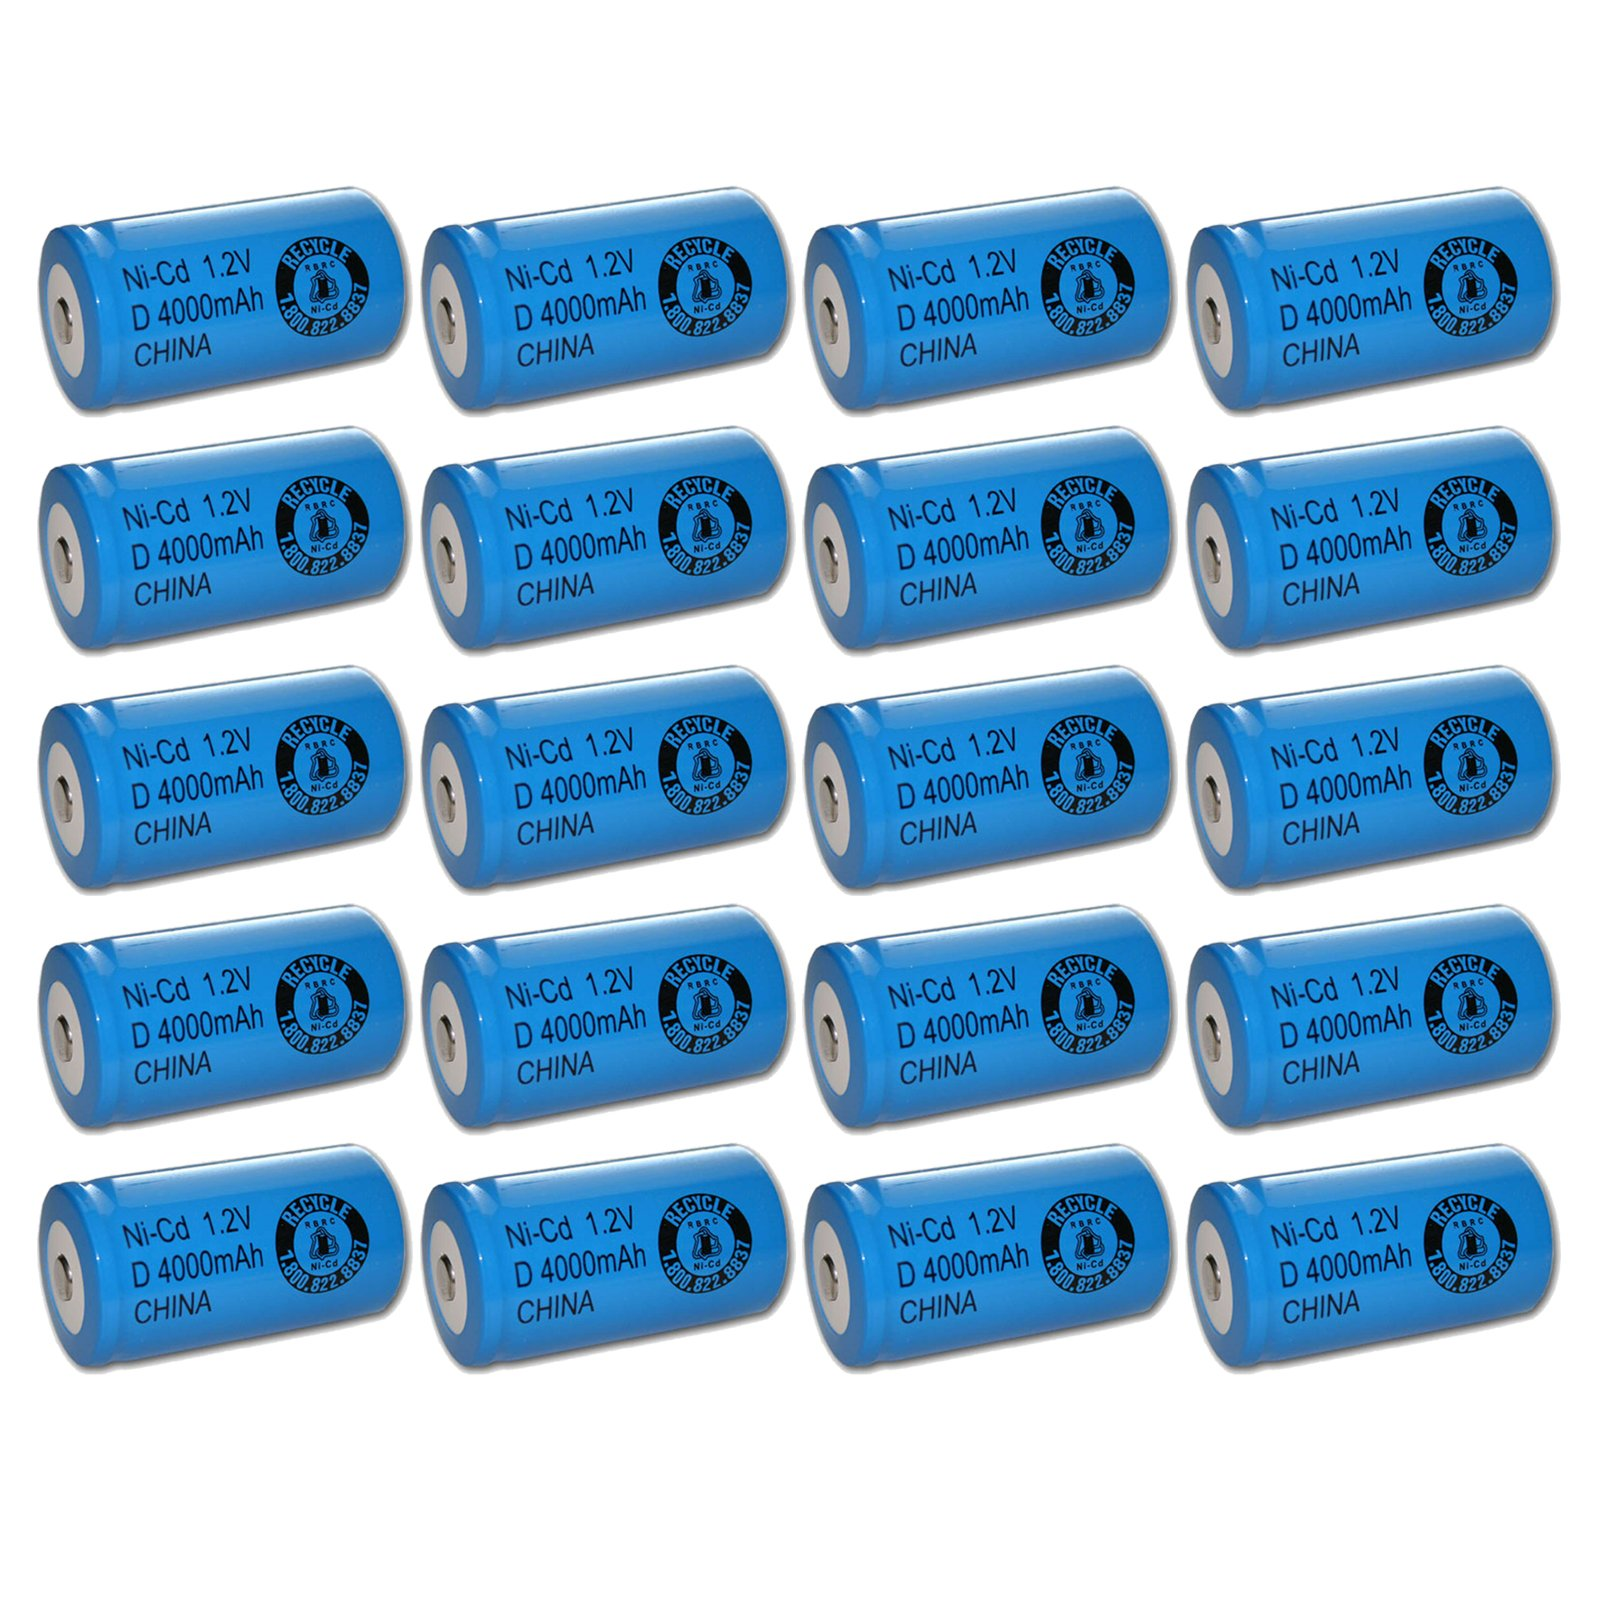 20x Exell 1.2V 4000mAh NiCD D Rechargeable Battery Button Top Cell FAST USA SHIP